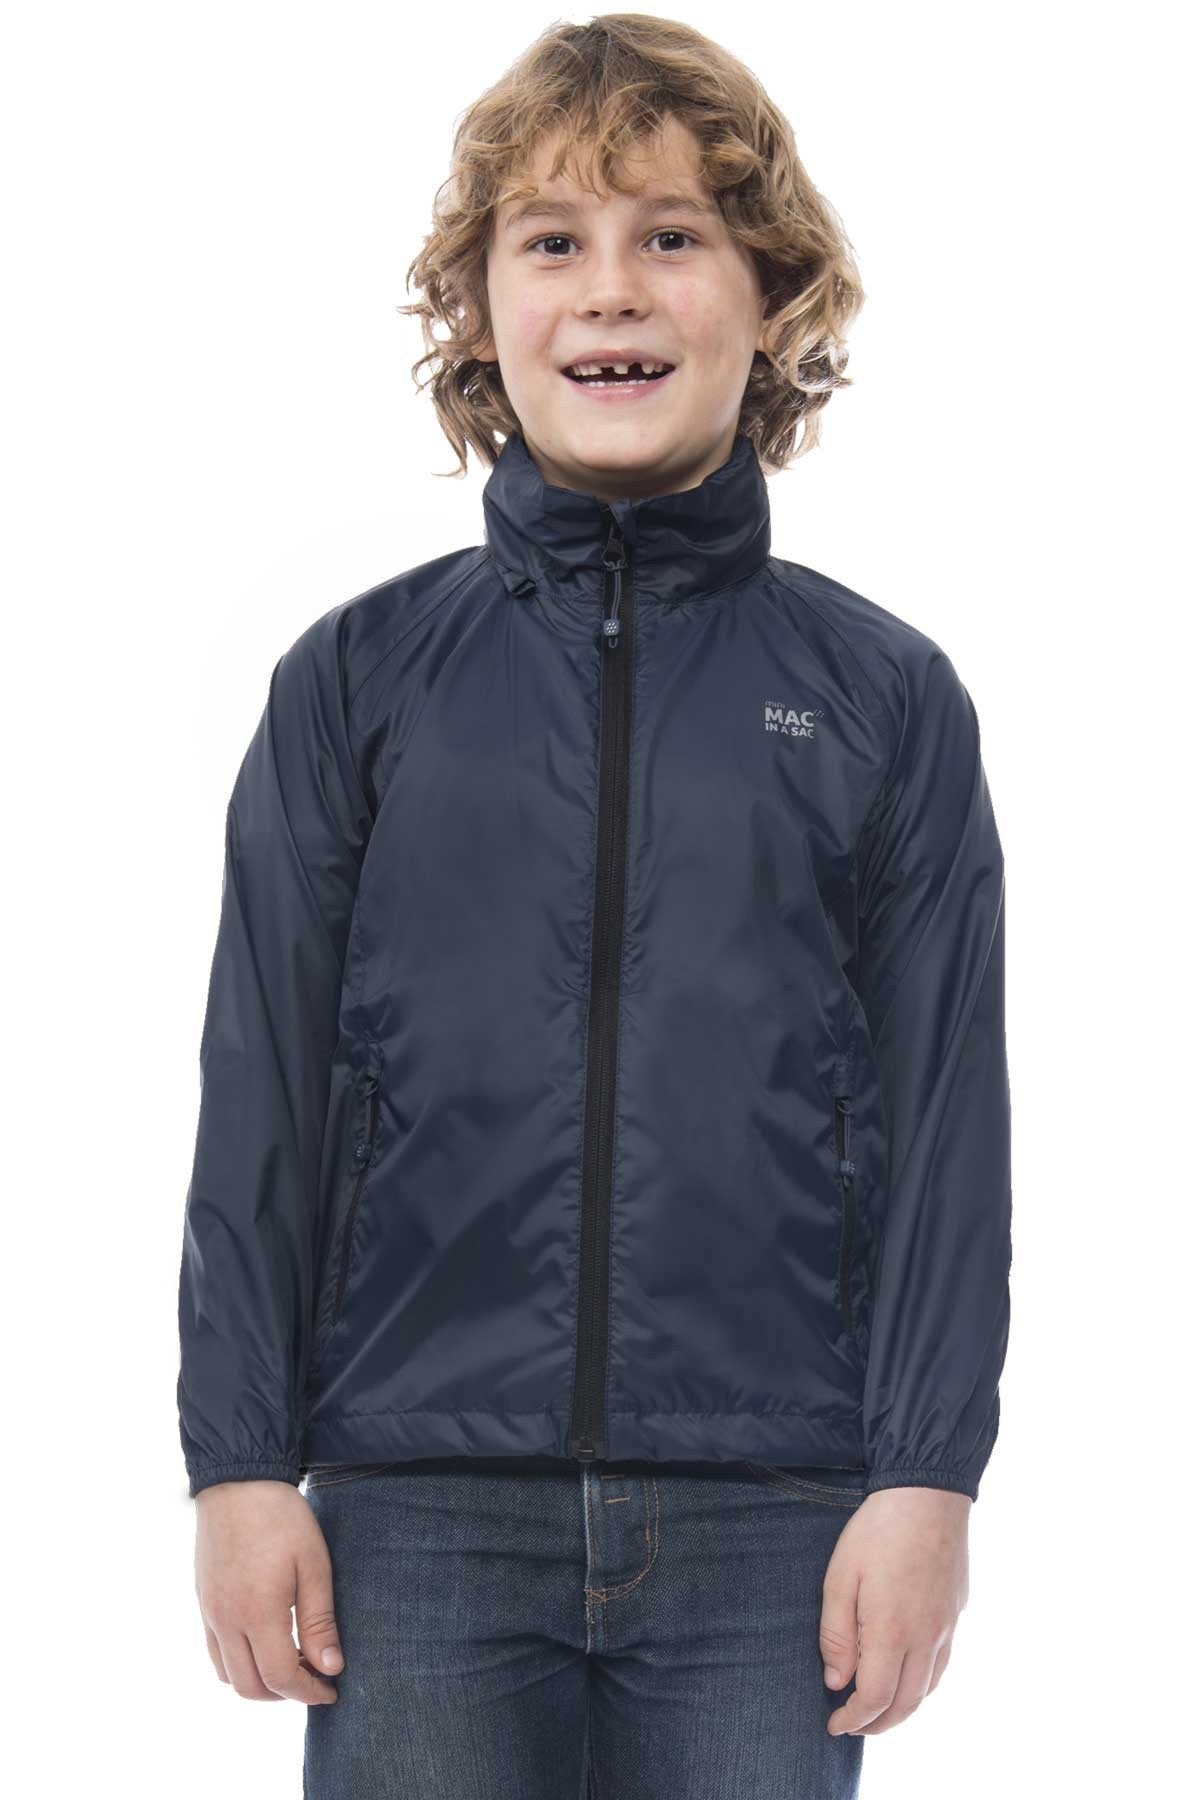 Kids Packable Waterproof Jacket - Navy